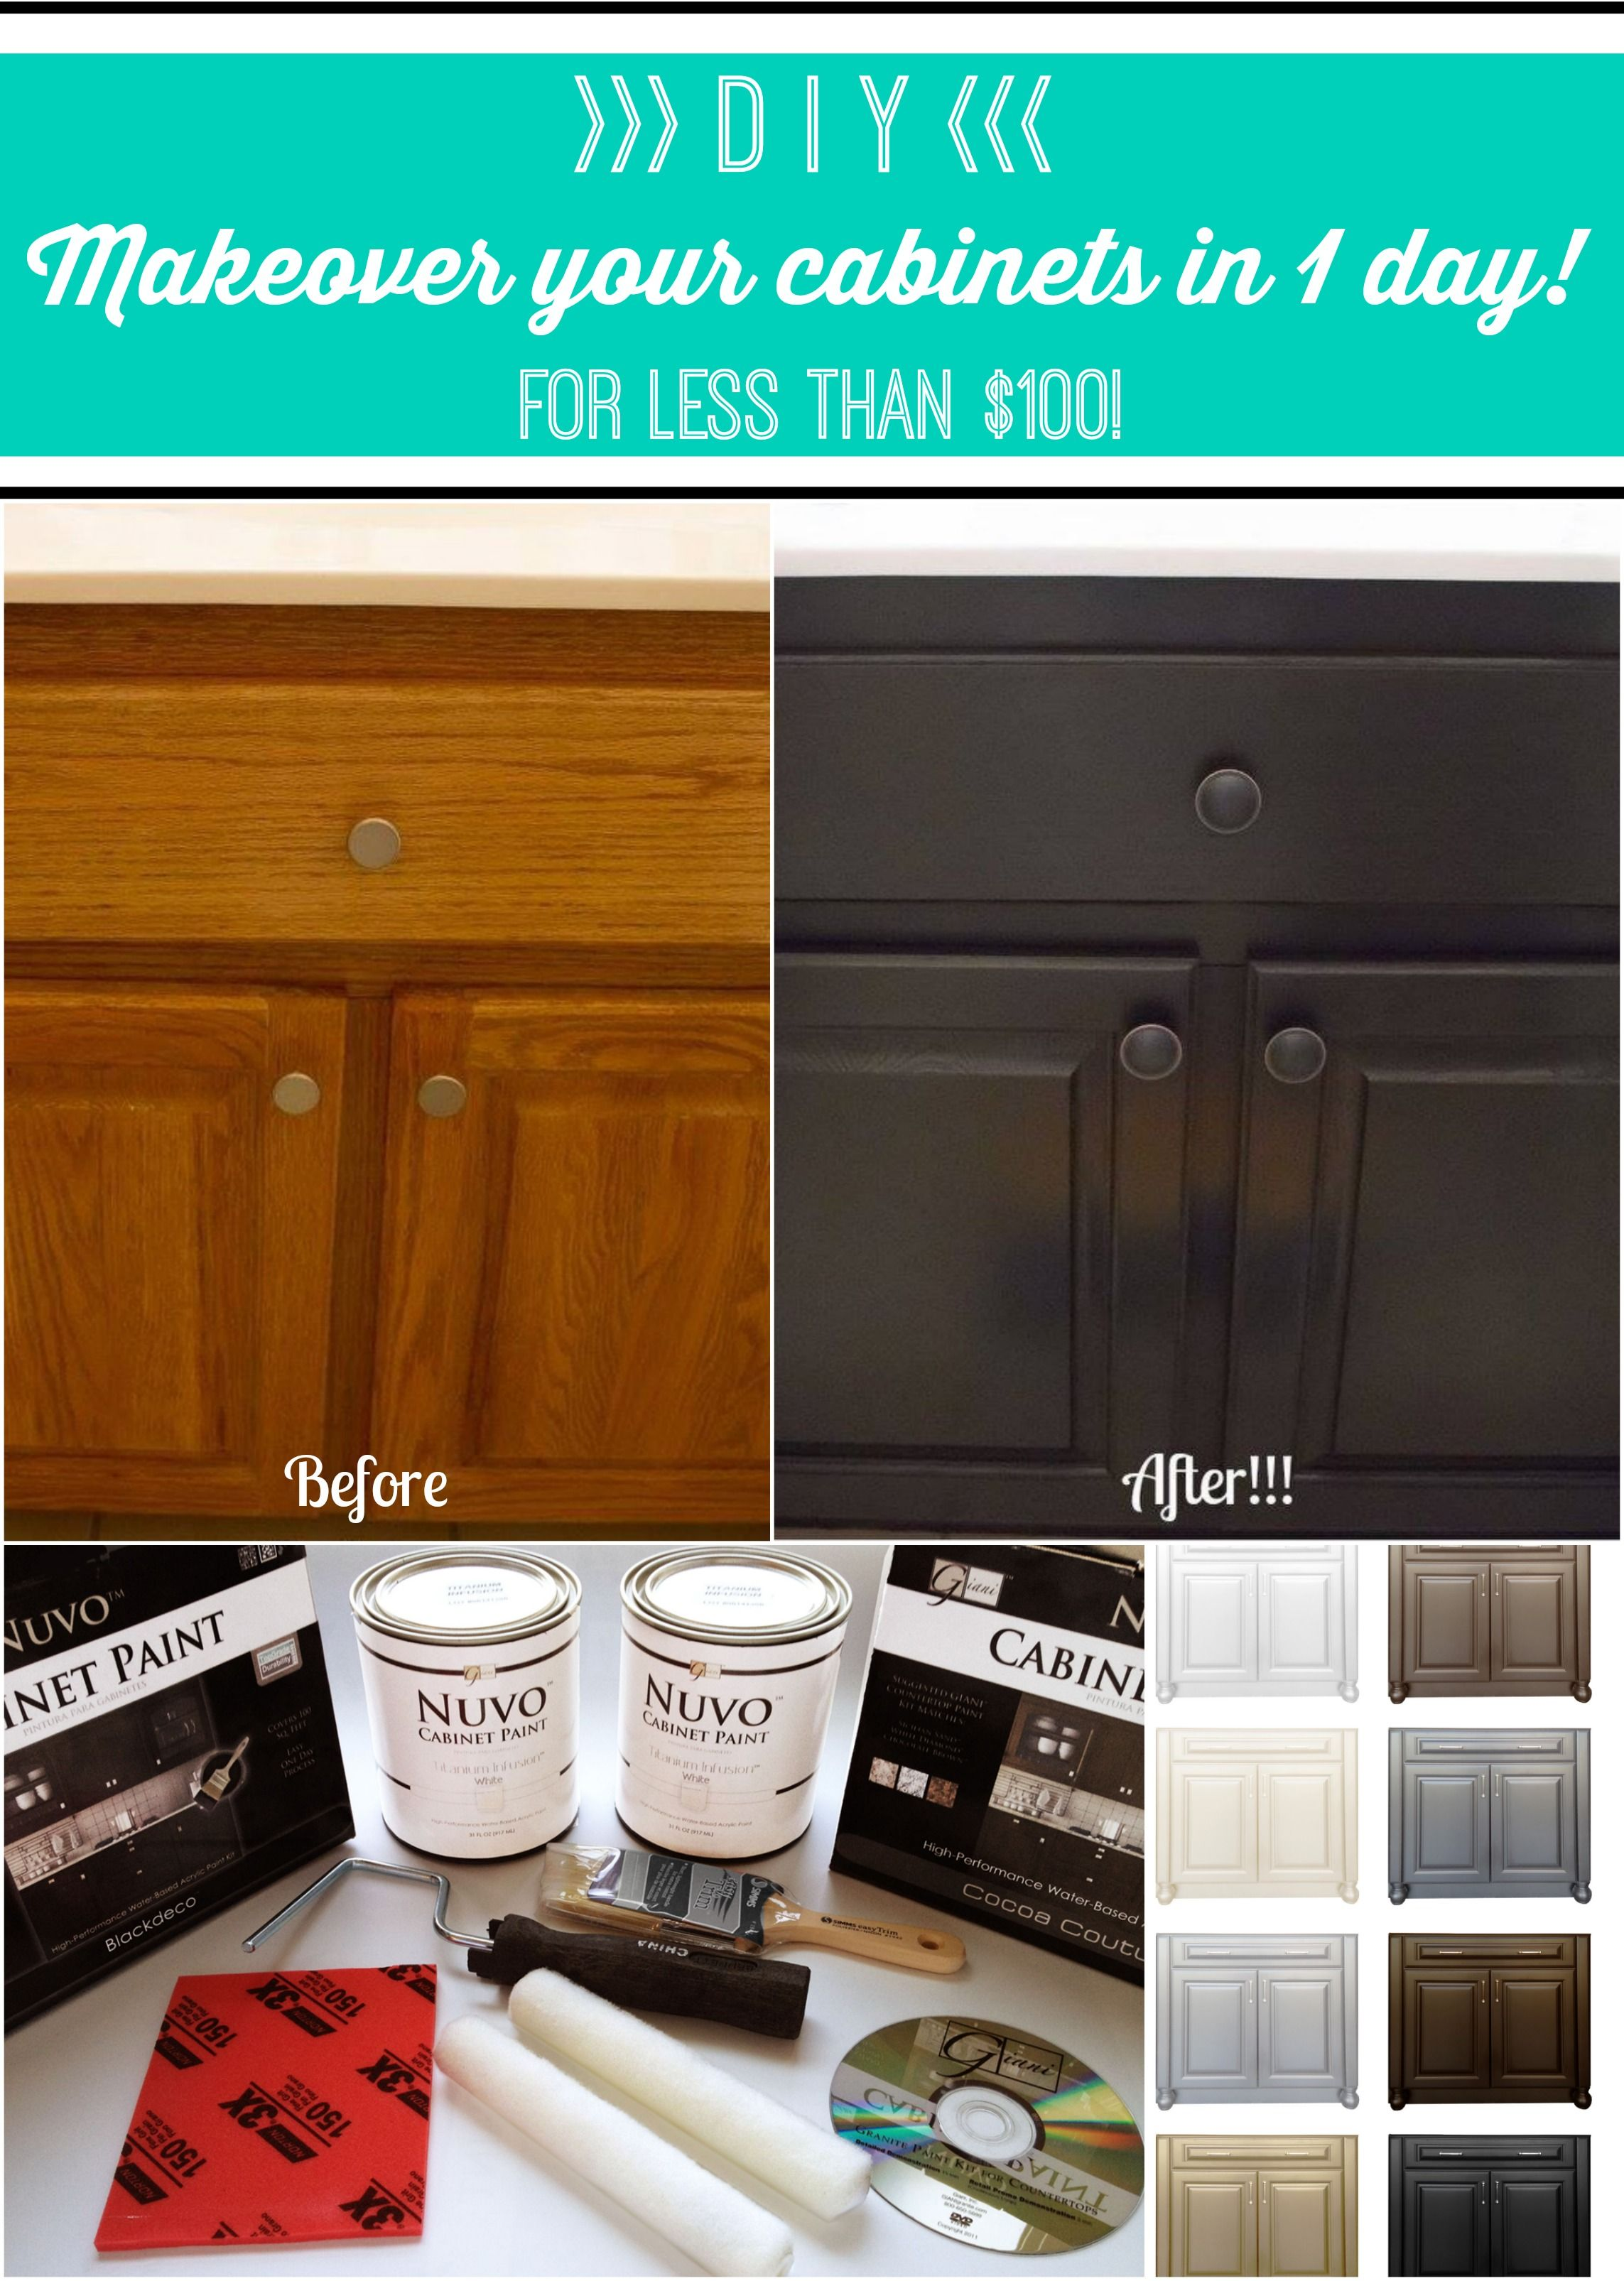 Nuvo Cabinet Paint By Giani Inc Www Nuvocabinetpaint Com Love My Nuvo Cabinets I Used The Ever Painting Cabinets Nuvo Cabinet Paint Clean Kitchen Cabinets